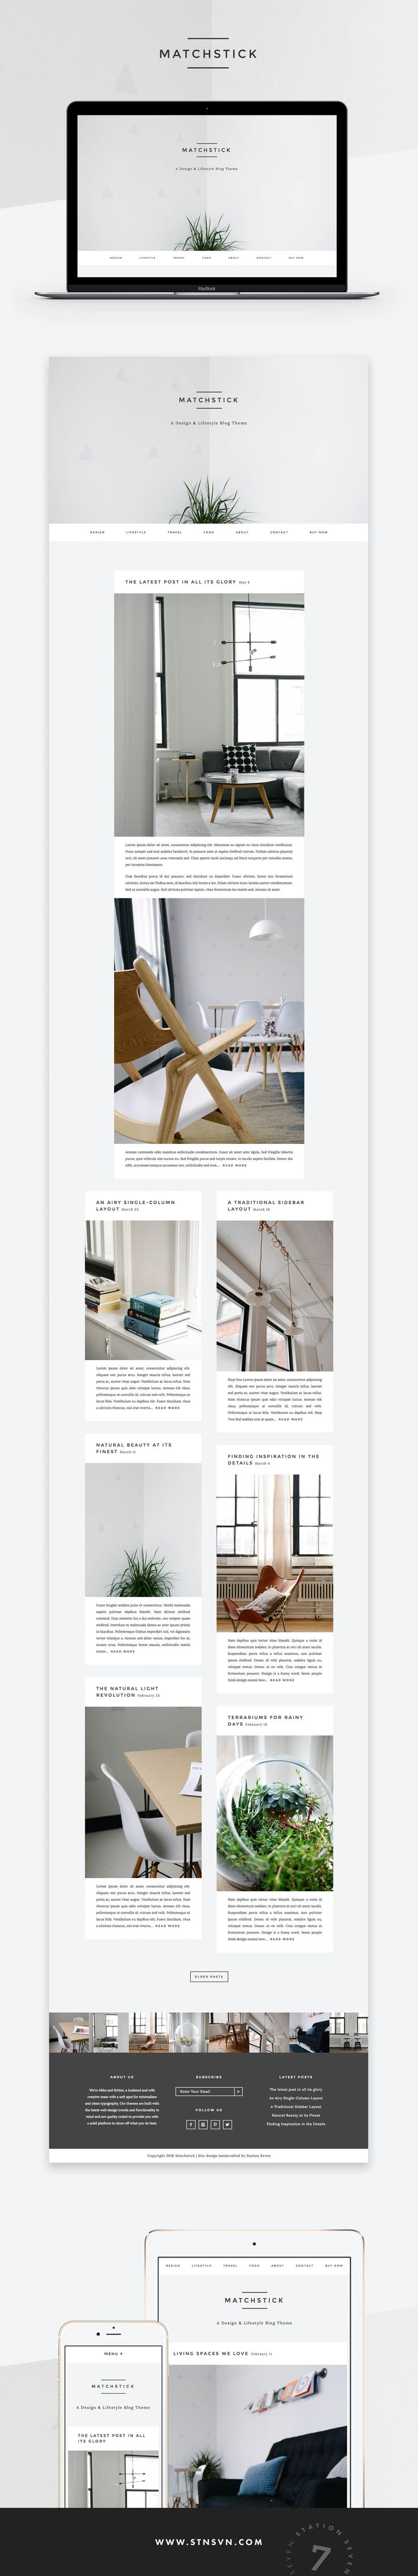 Matchstick is a beautifully simple, masonry WordPress theme that'll impress your readers by Station Seven.